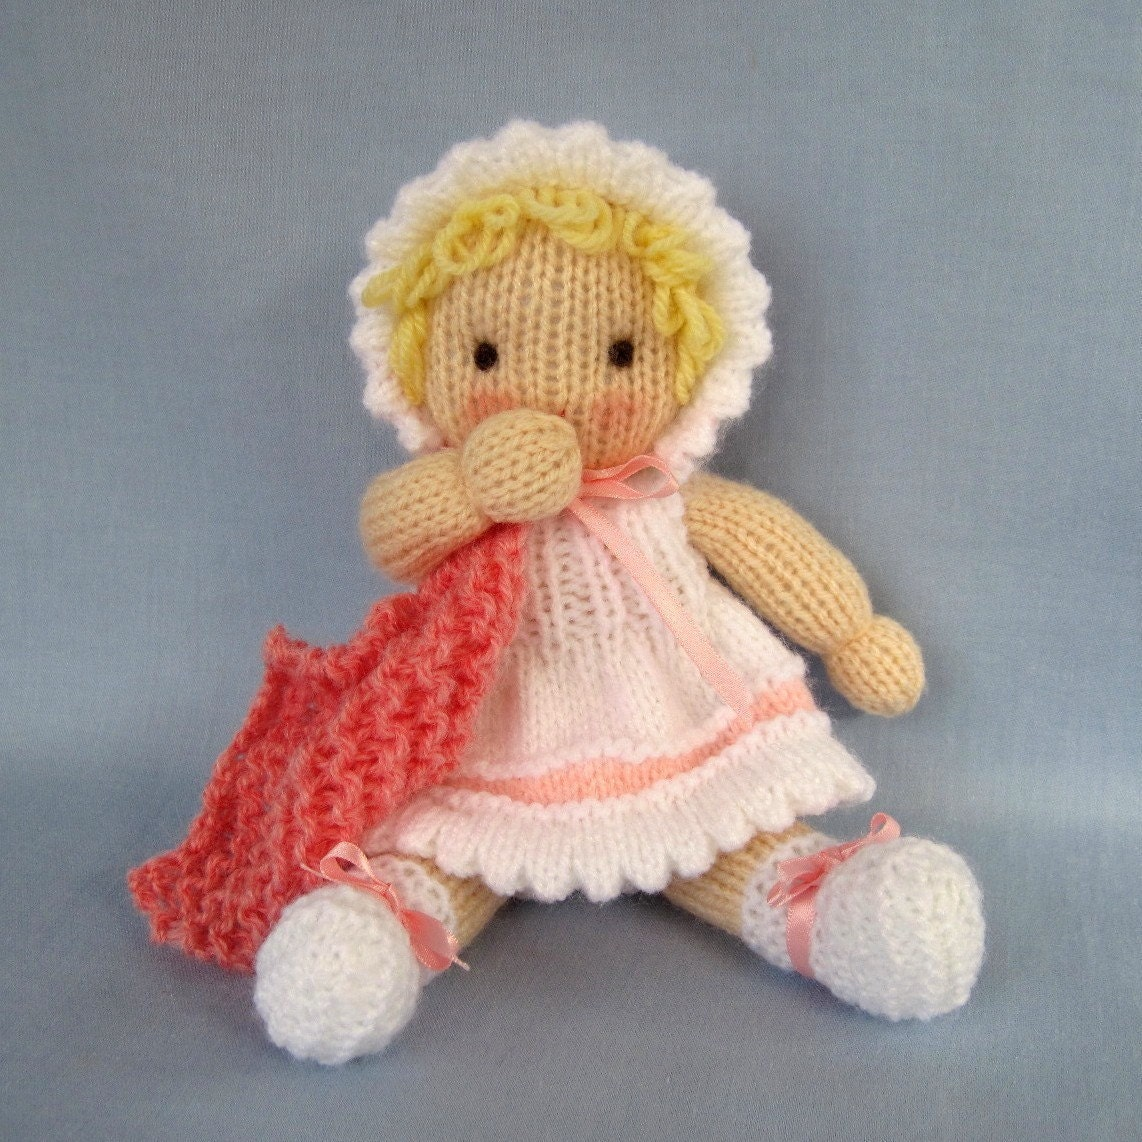 LITTLE DAISY knitted toy baby doll PDF email knitting